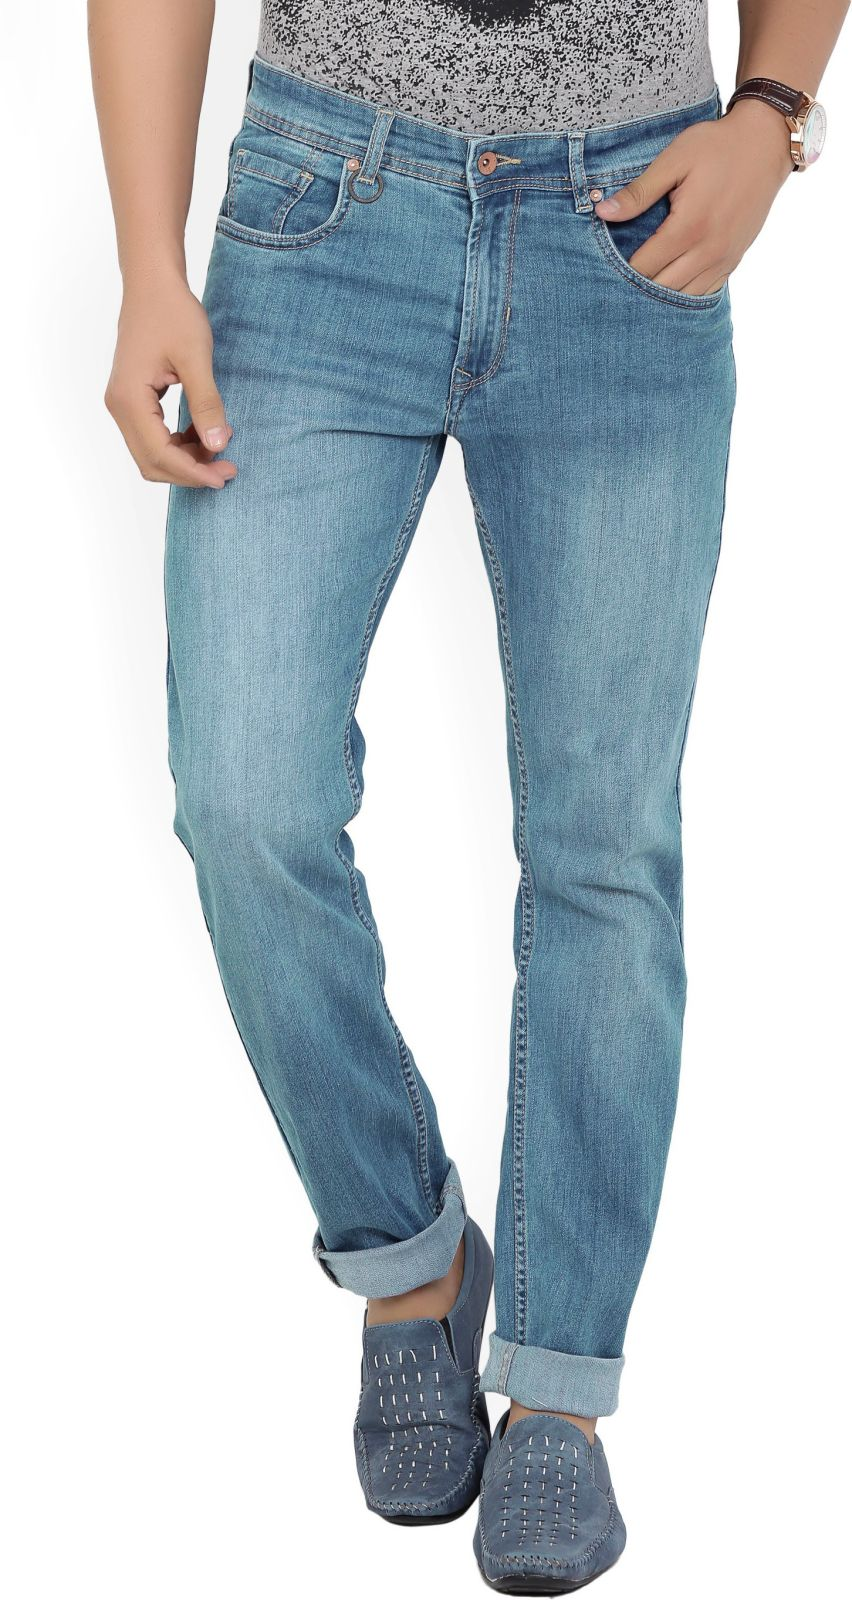 Peter England University Slim Men's Blue Jeans